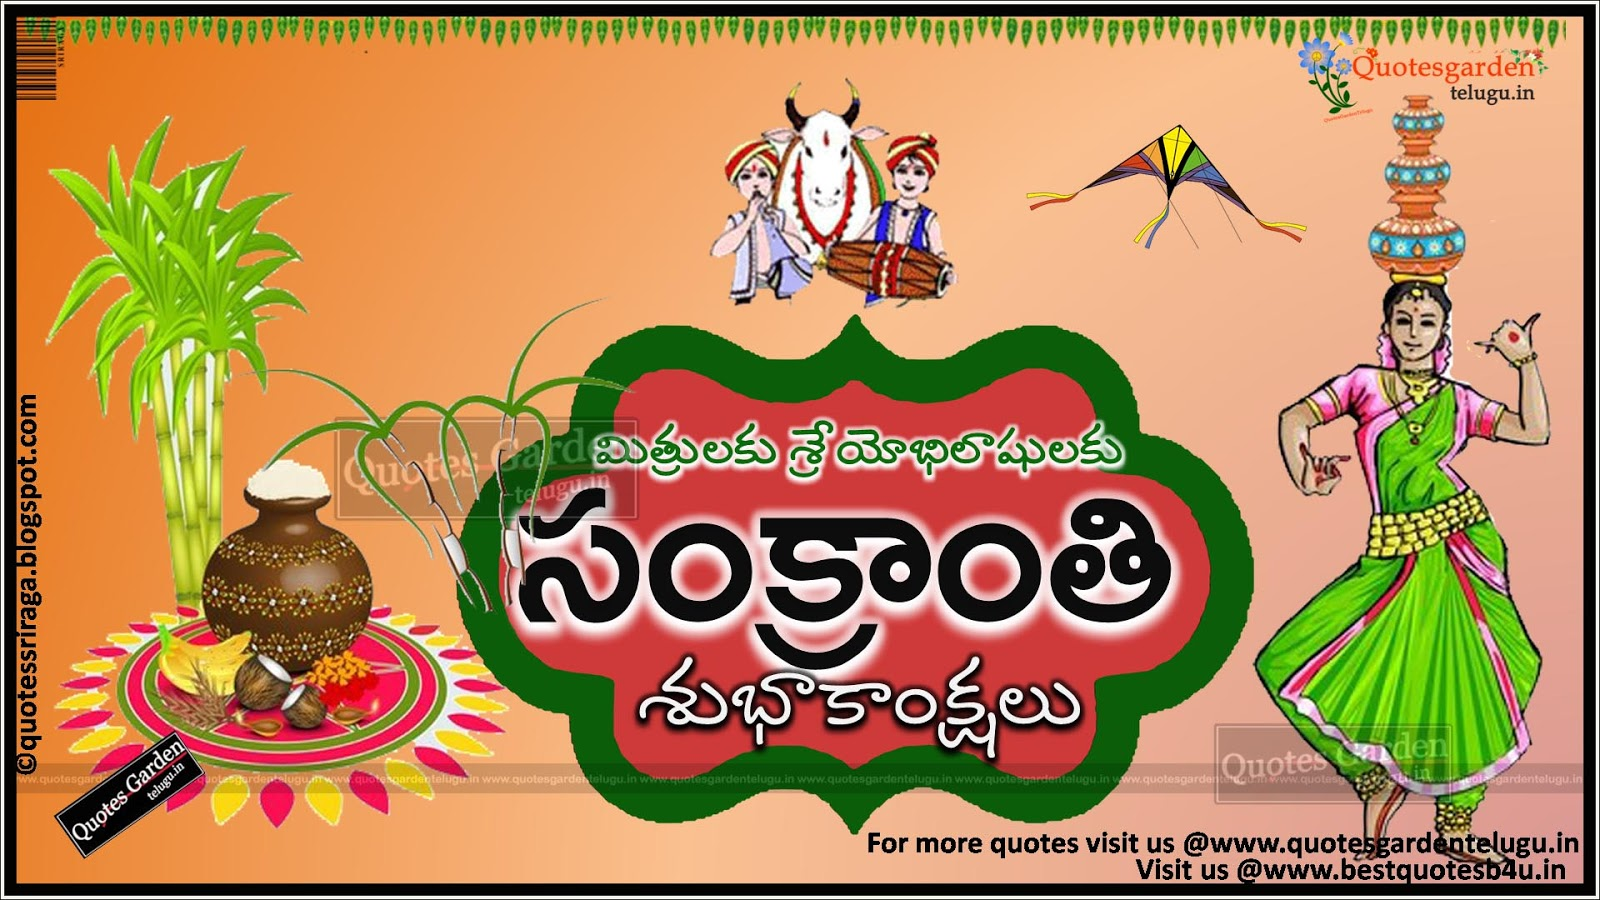 Happy sankranthi greetings wallpapers in telugu sankranti images happy sankranthi greetings wallpapers in telugu m4hsunfo